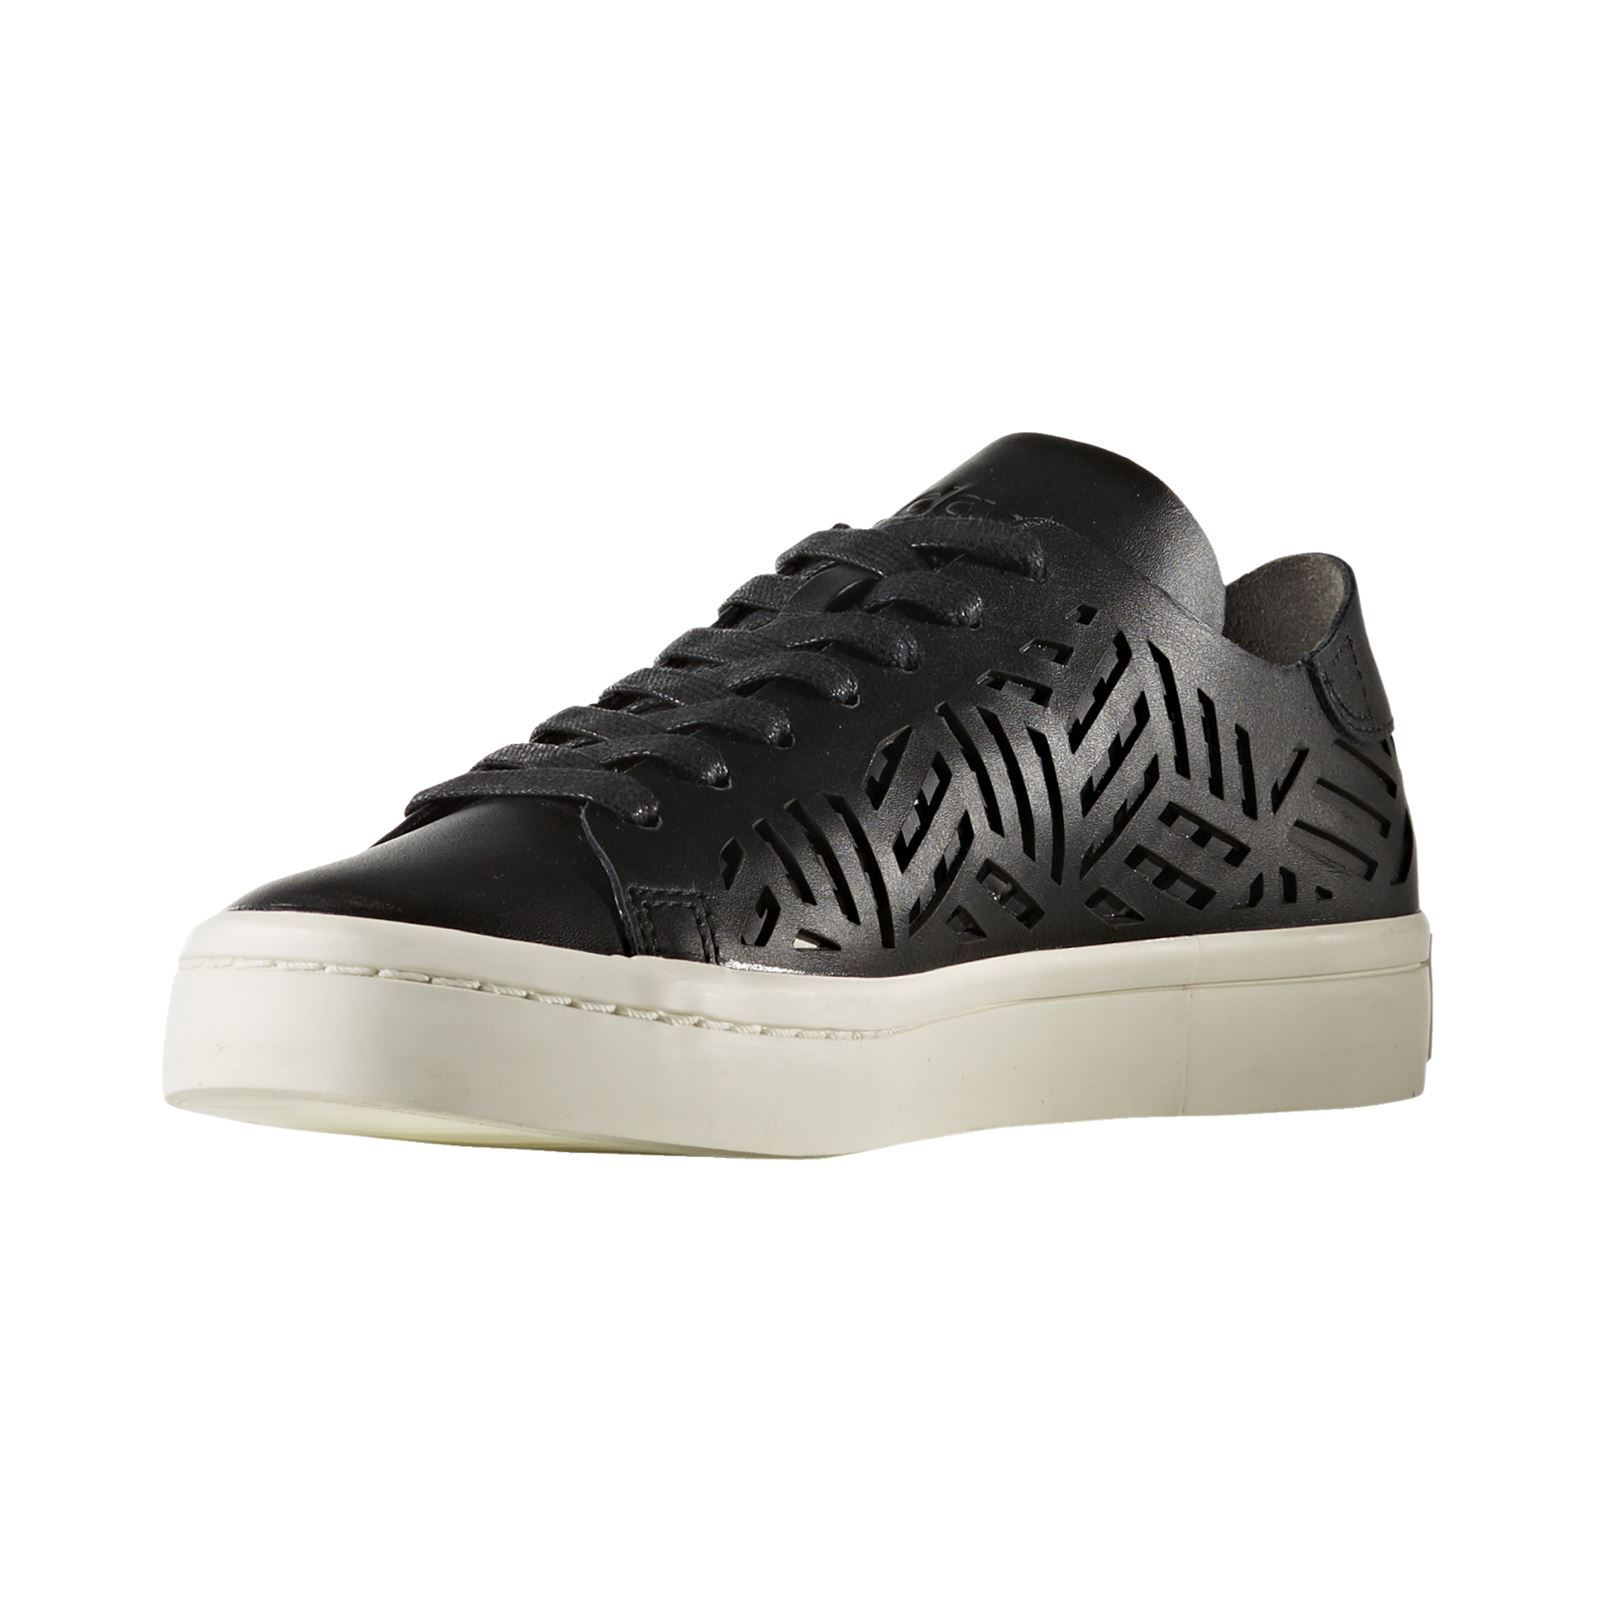 Adidas Originals COURTVANTAGE CUTOUT Sneakers in pelle nero